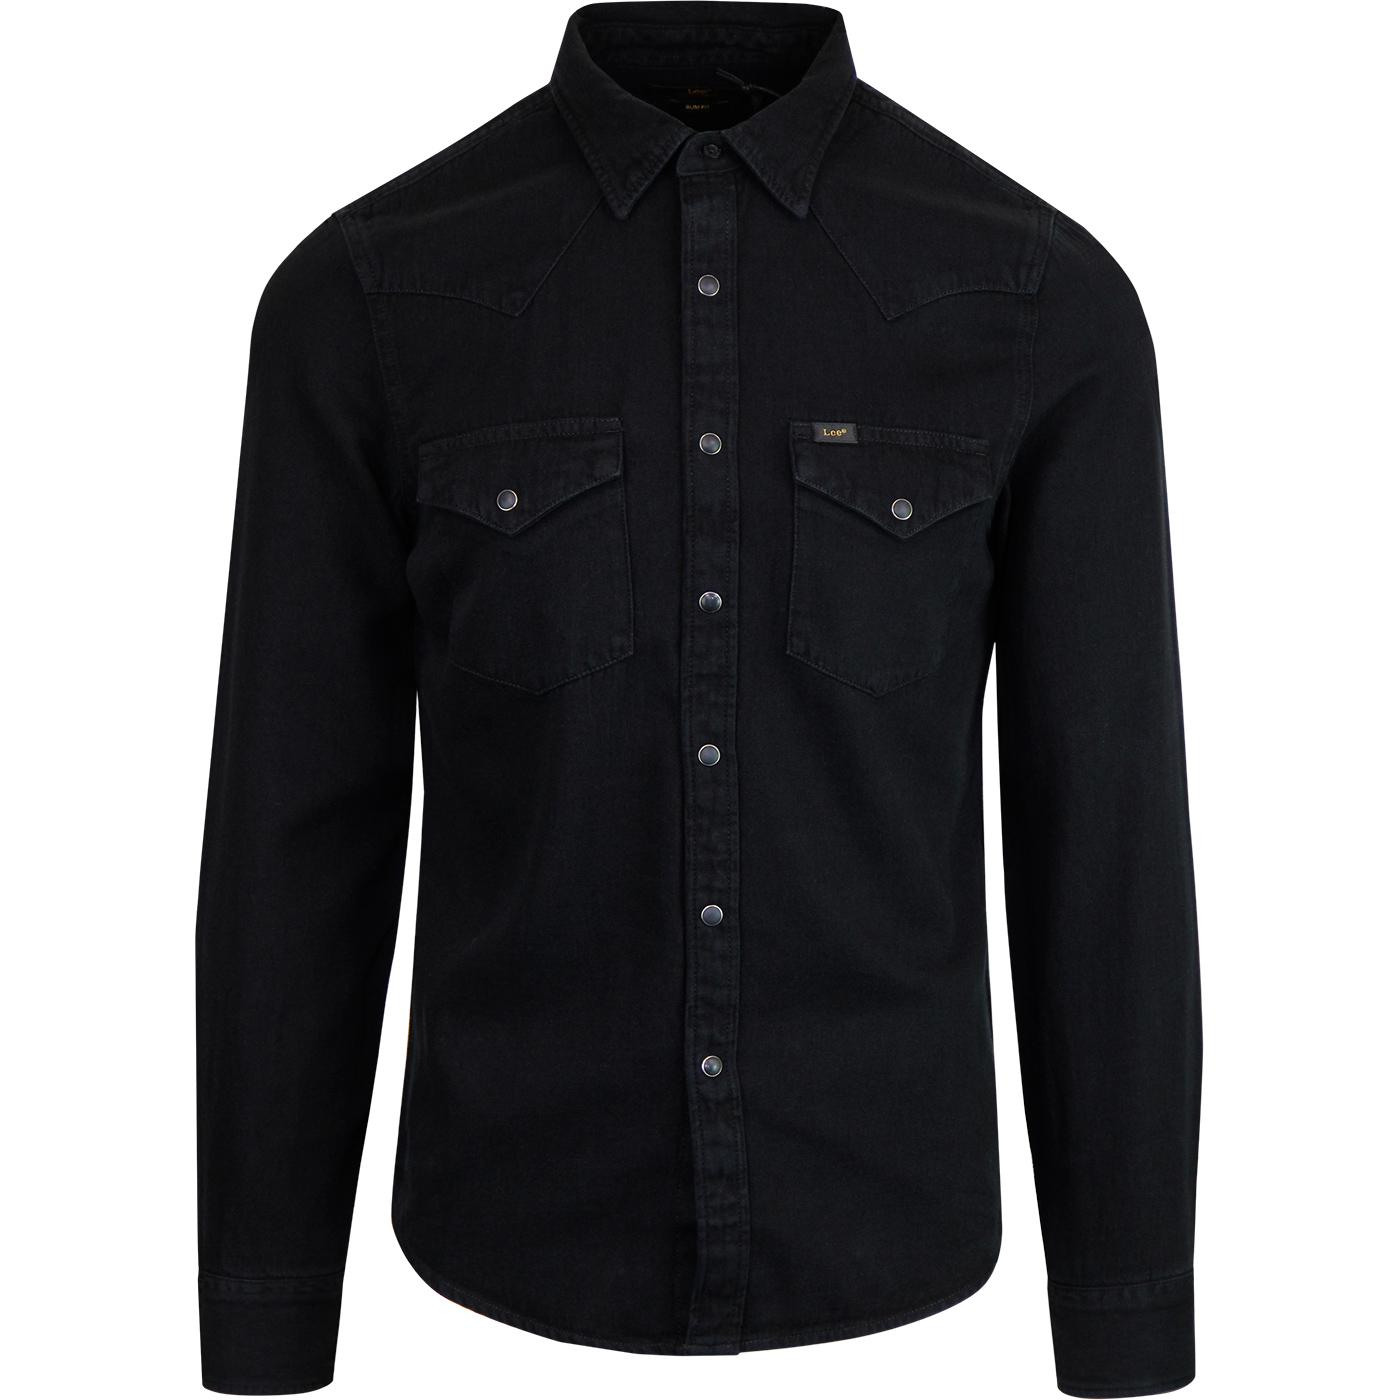 LEE Retro 70s Slim Fit Denim Western Shirt (Black)